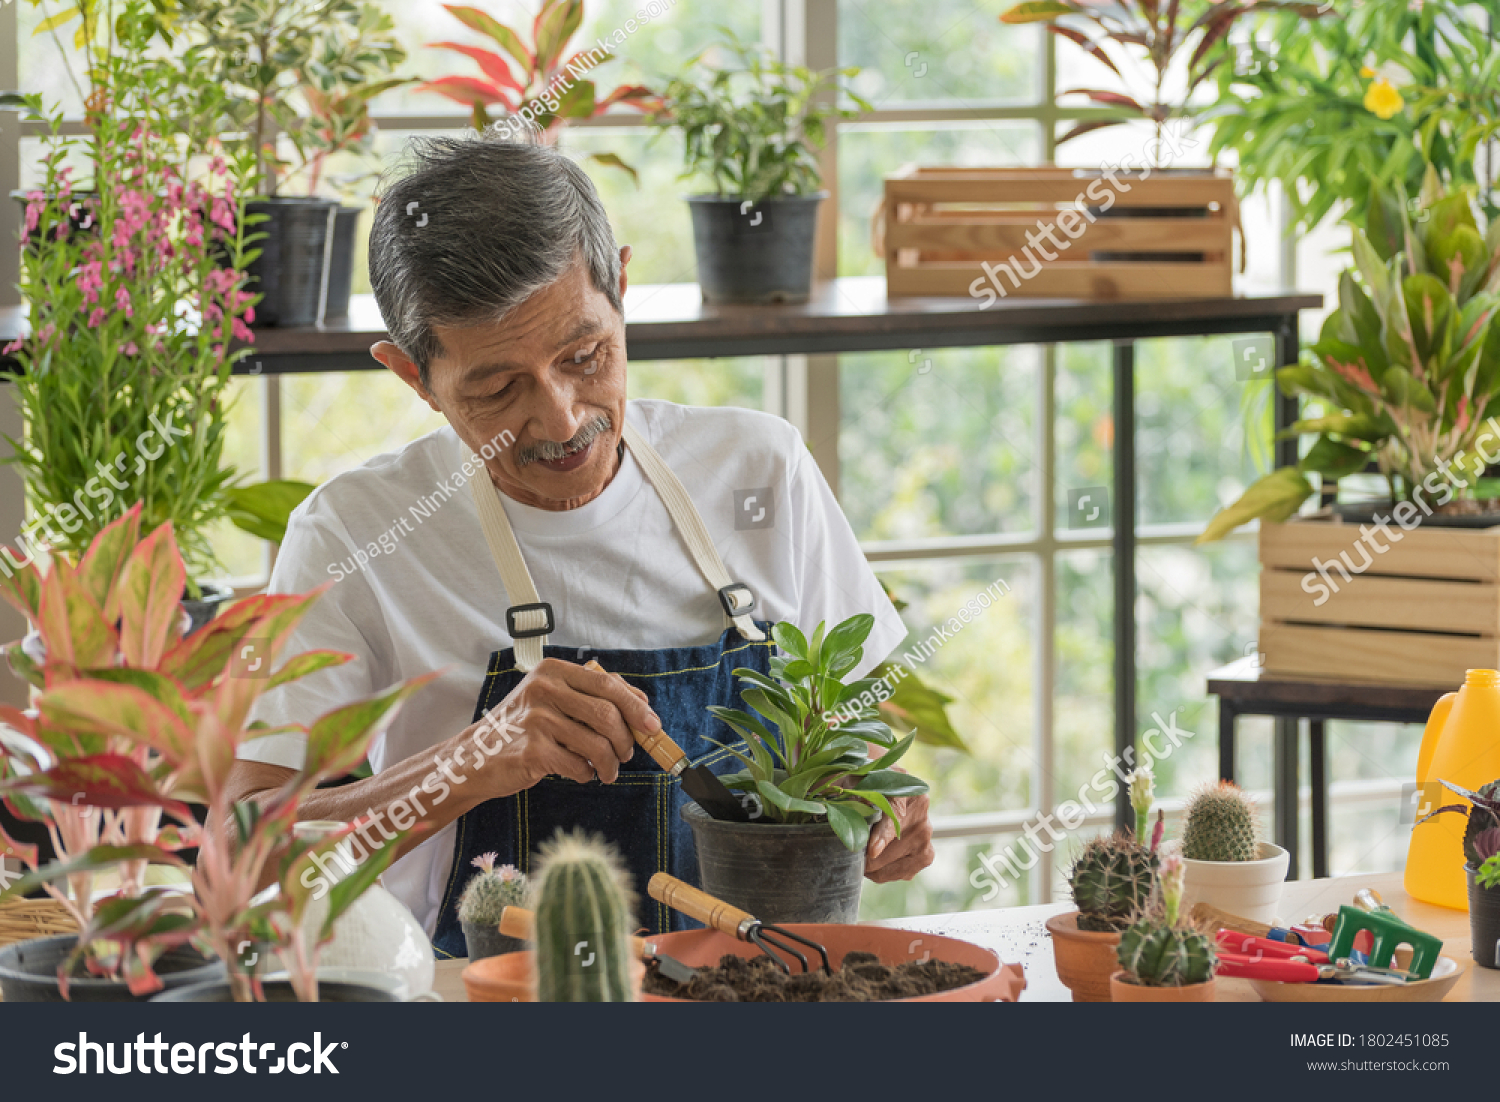 Senior asian retirement old man in casual outfit doing a hobby with happy and relax gardening tree plant in greenhouse garden farm #1802451085